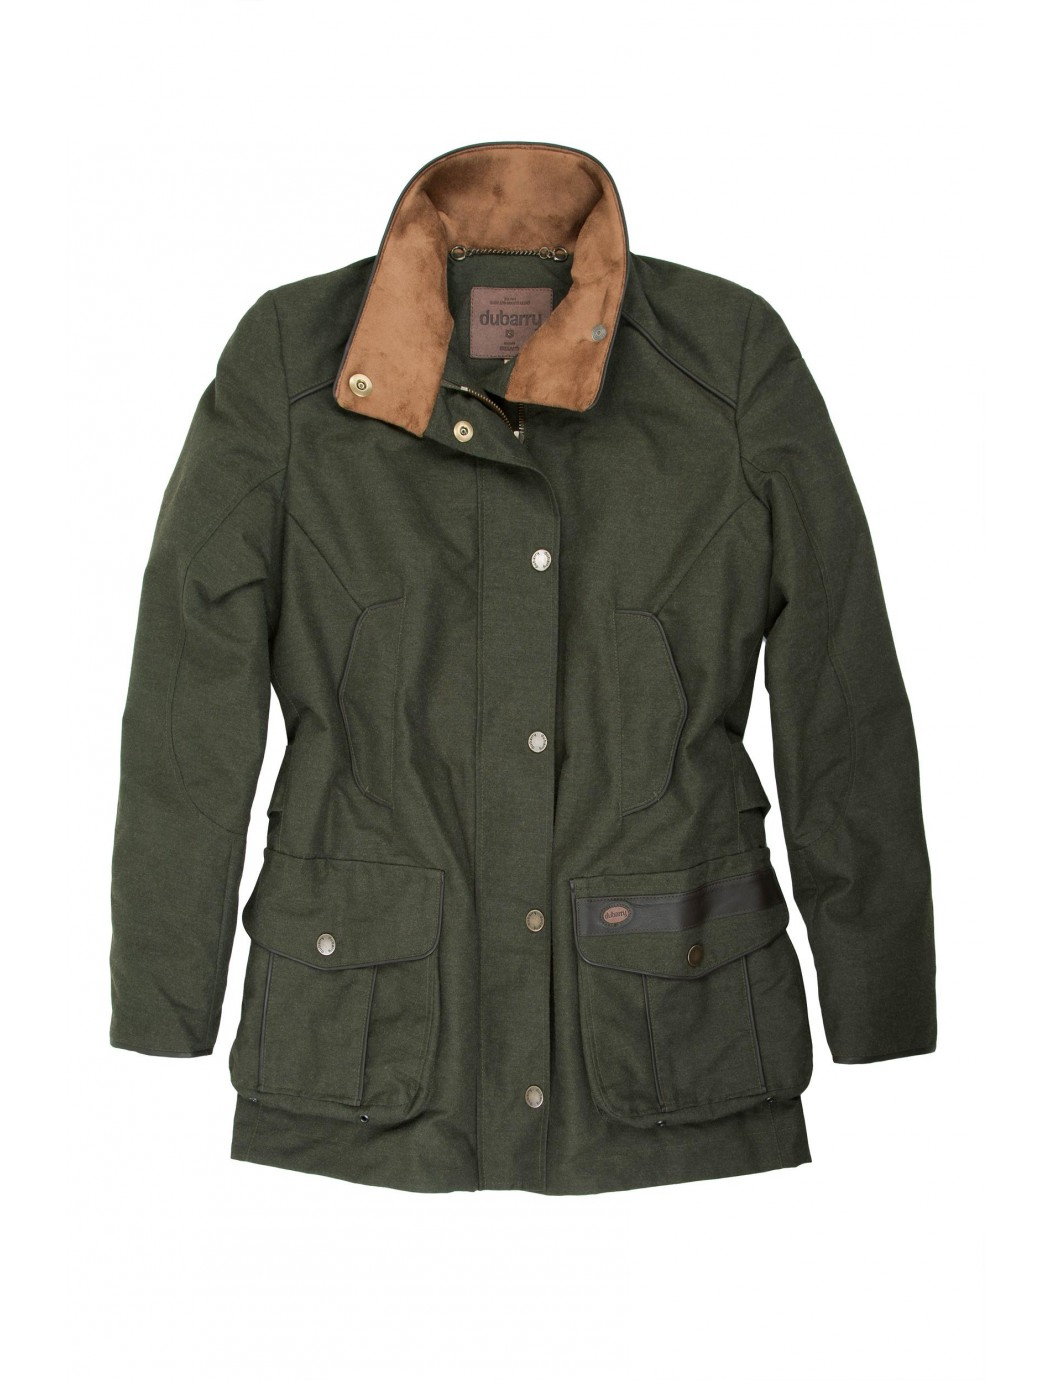 joyce-shooting-jacket-dark-olive-dubarry-1